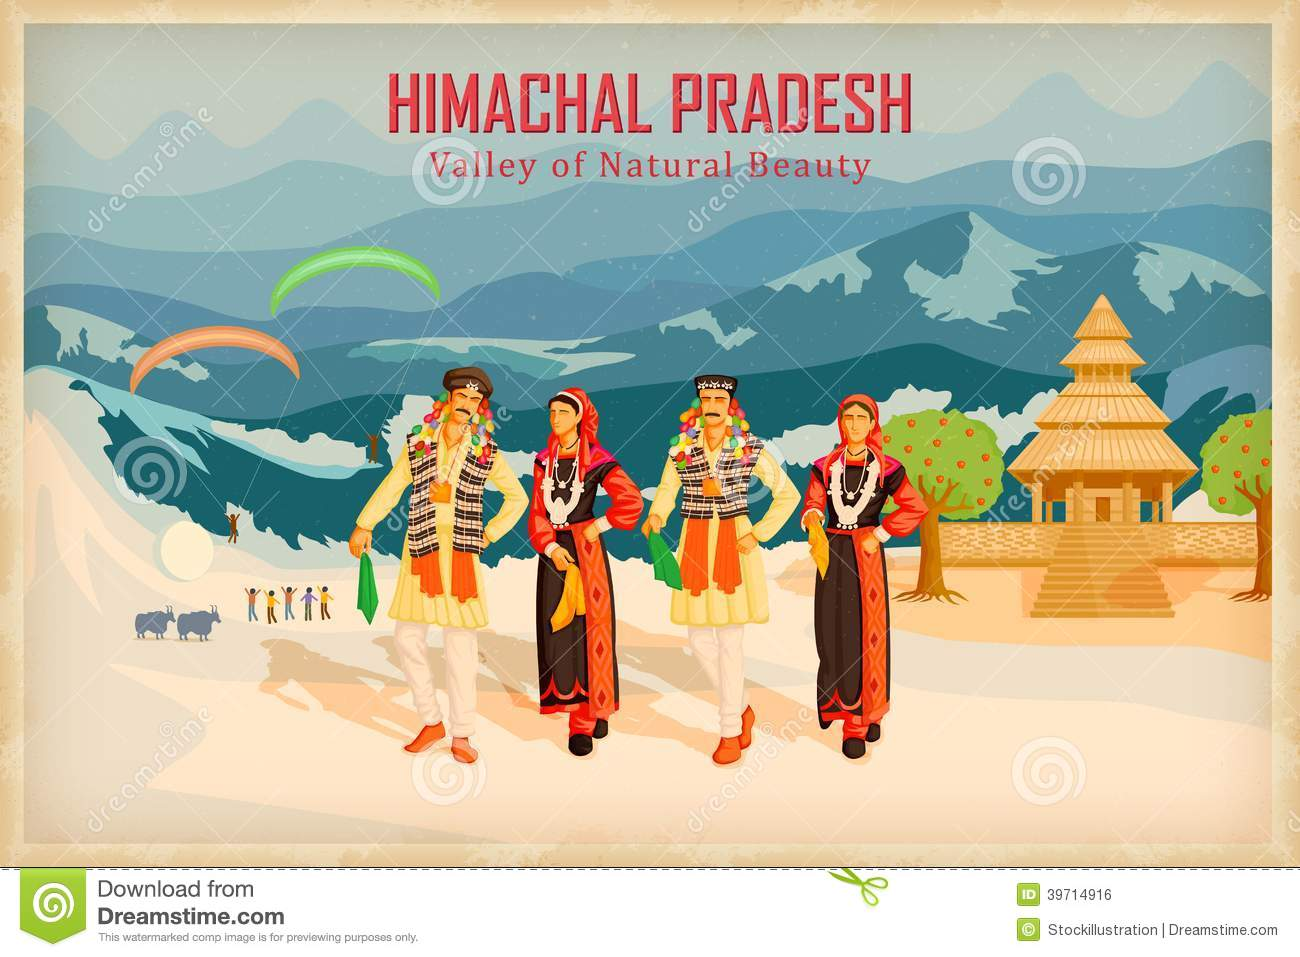 Illustration depicting the culture of Himachal Pradesh, India.